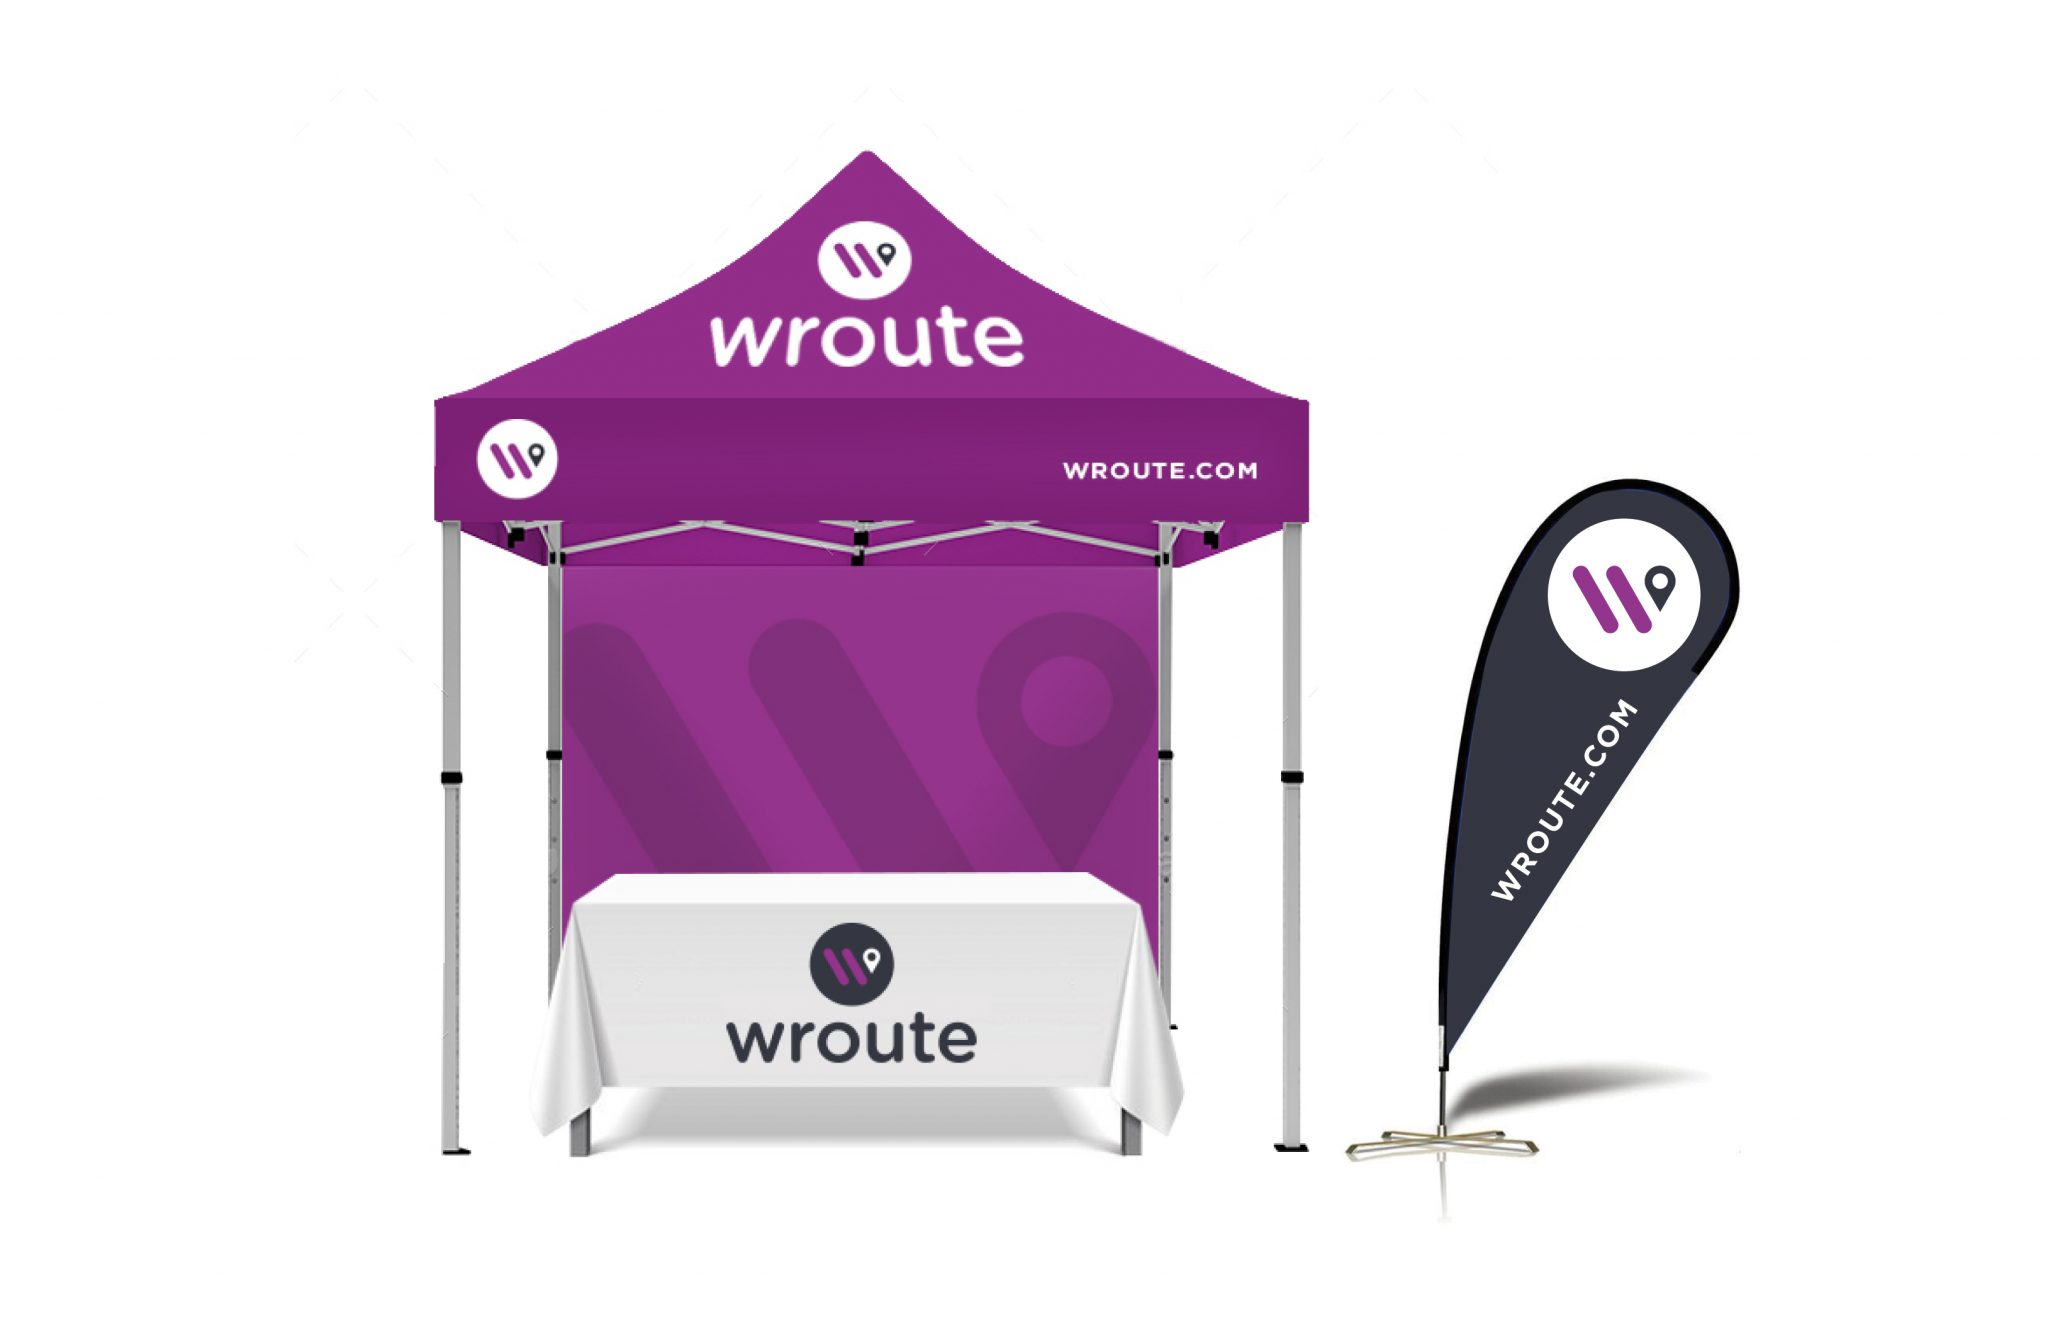 Wroute booth, tent and flag